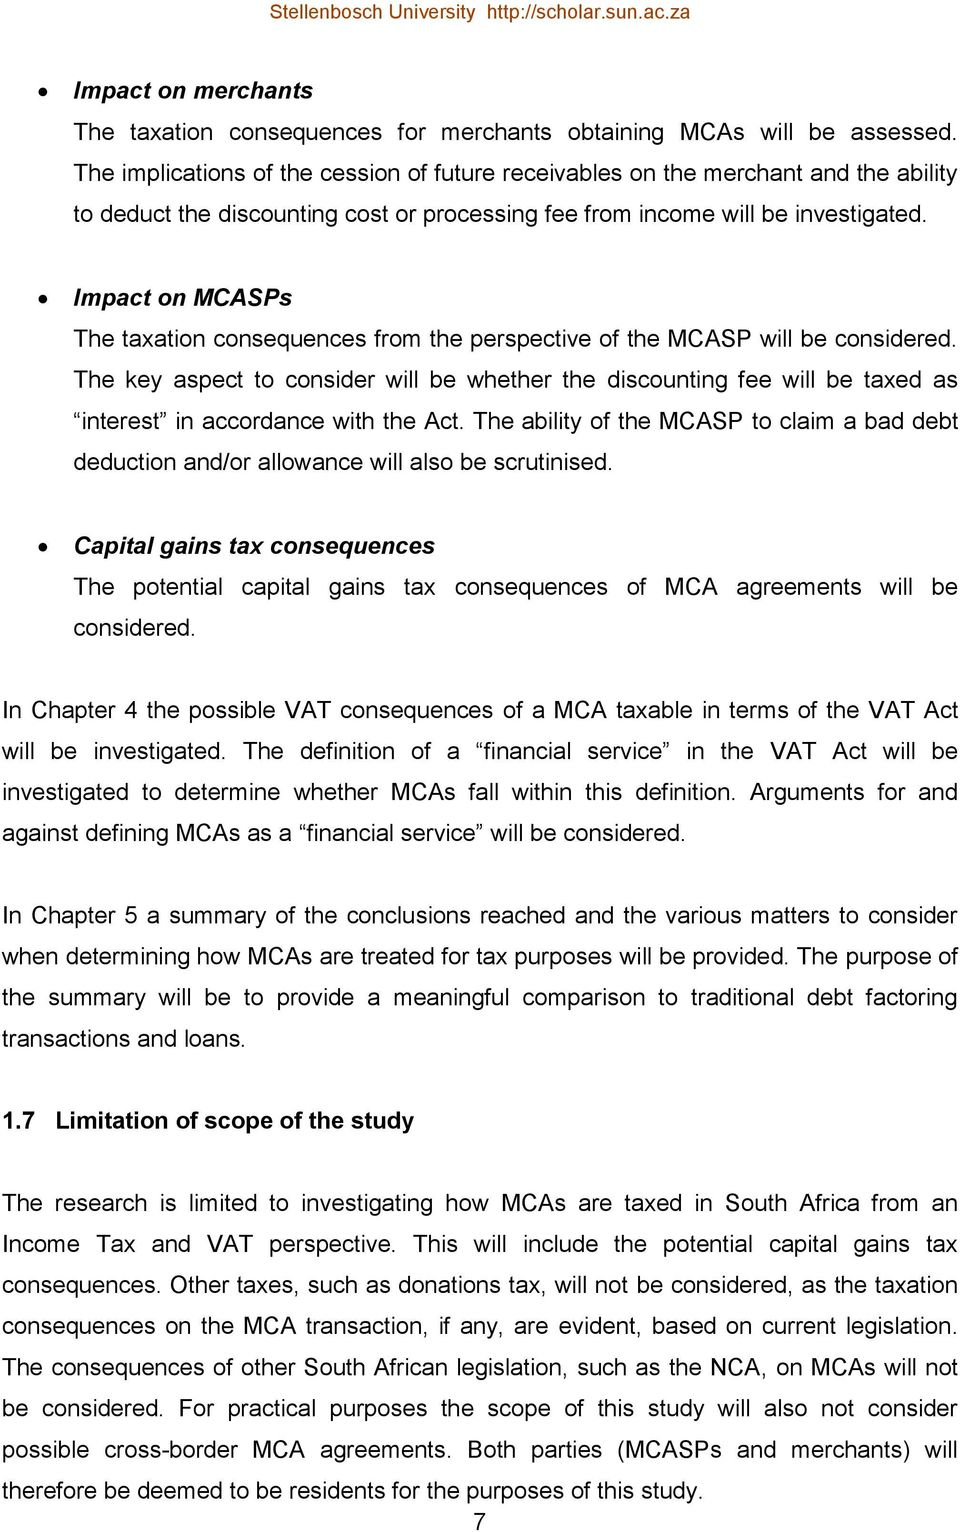 Impact on MCASPs The taxation consequences from the perspective of the MCASP will be considered.